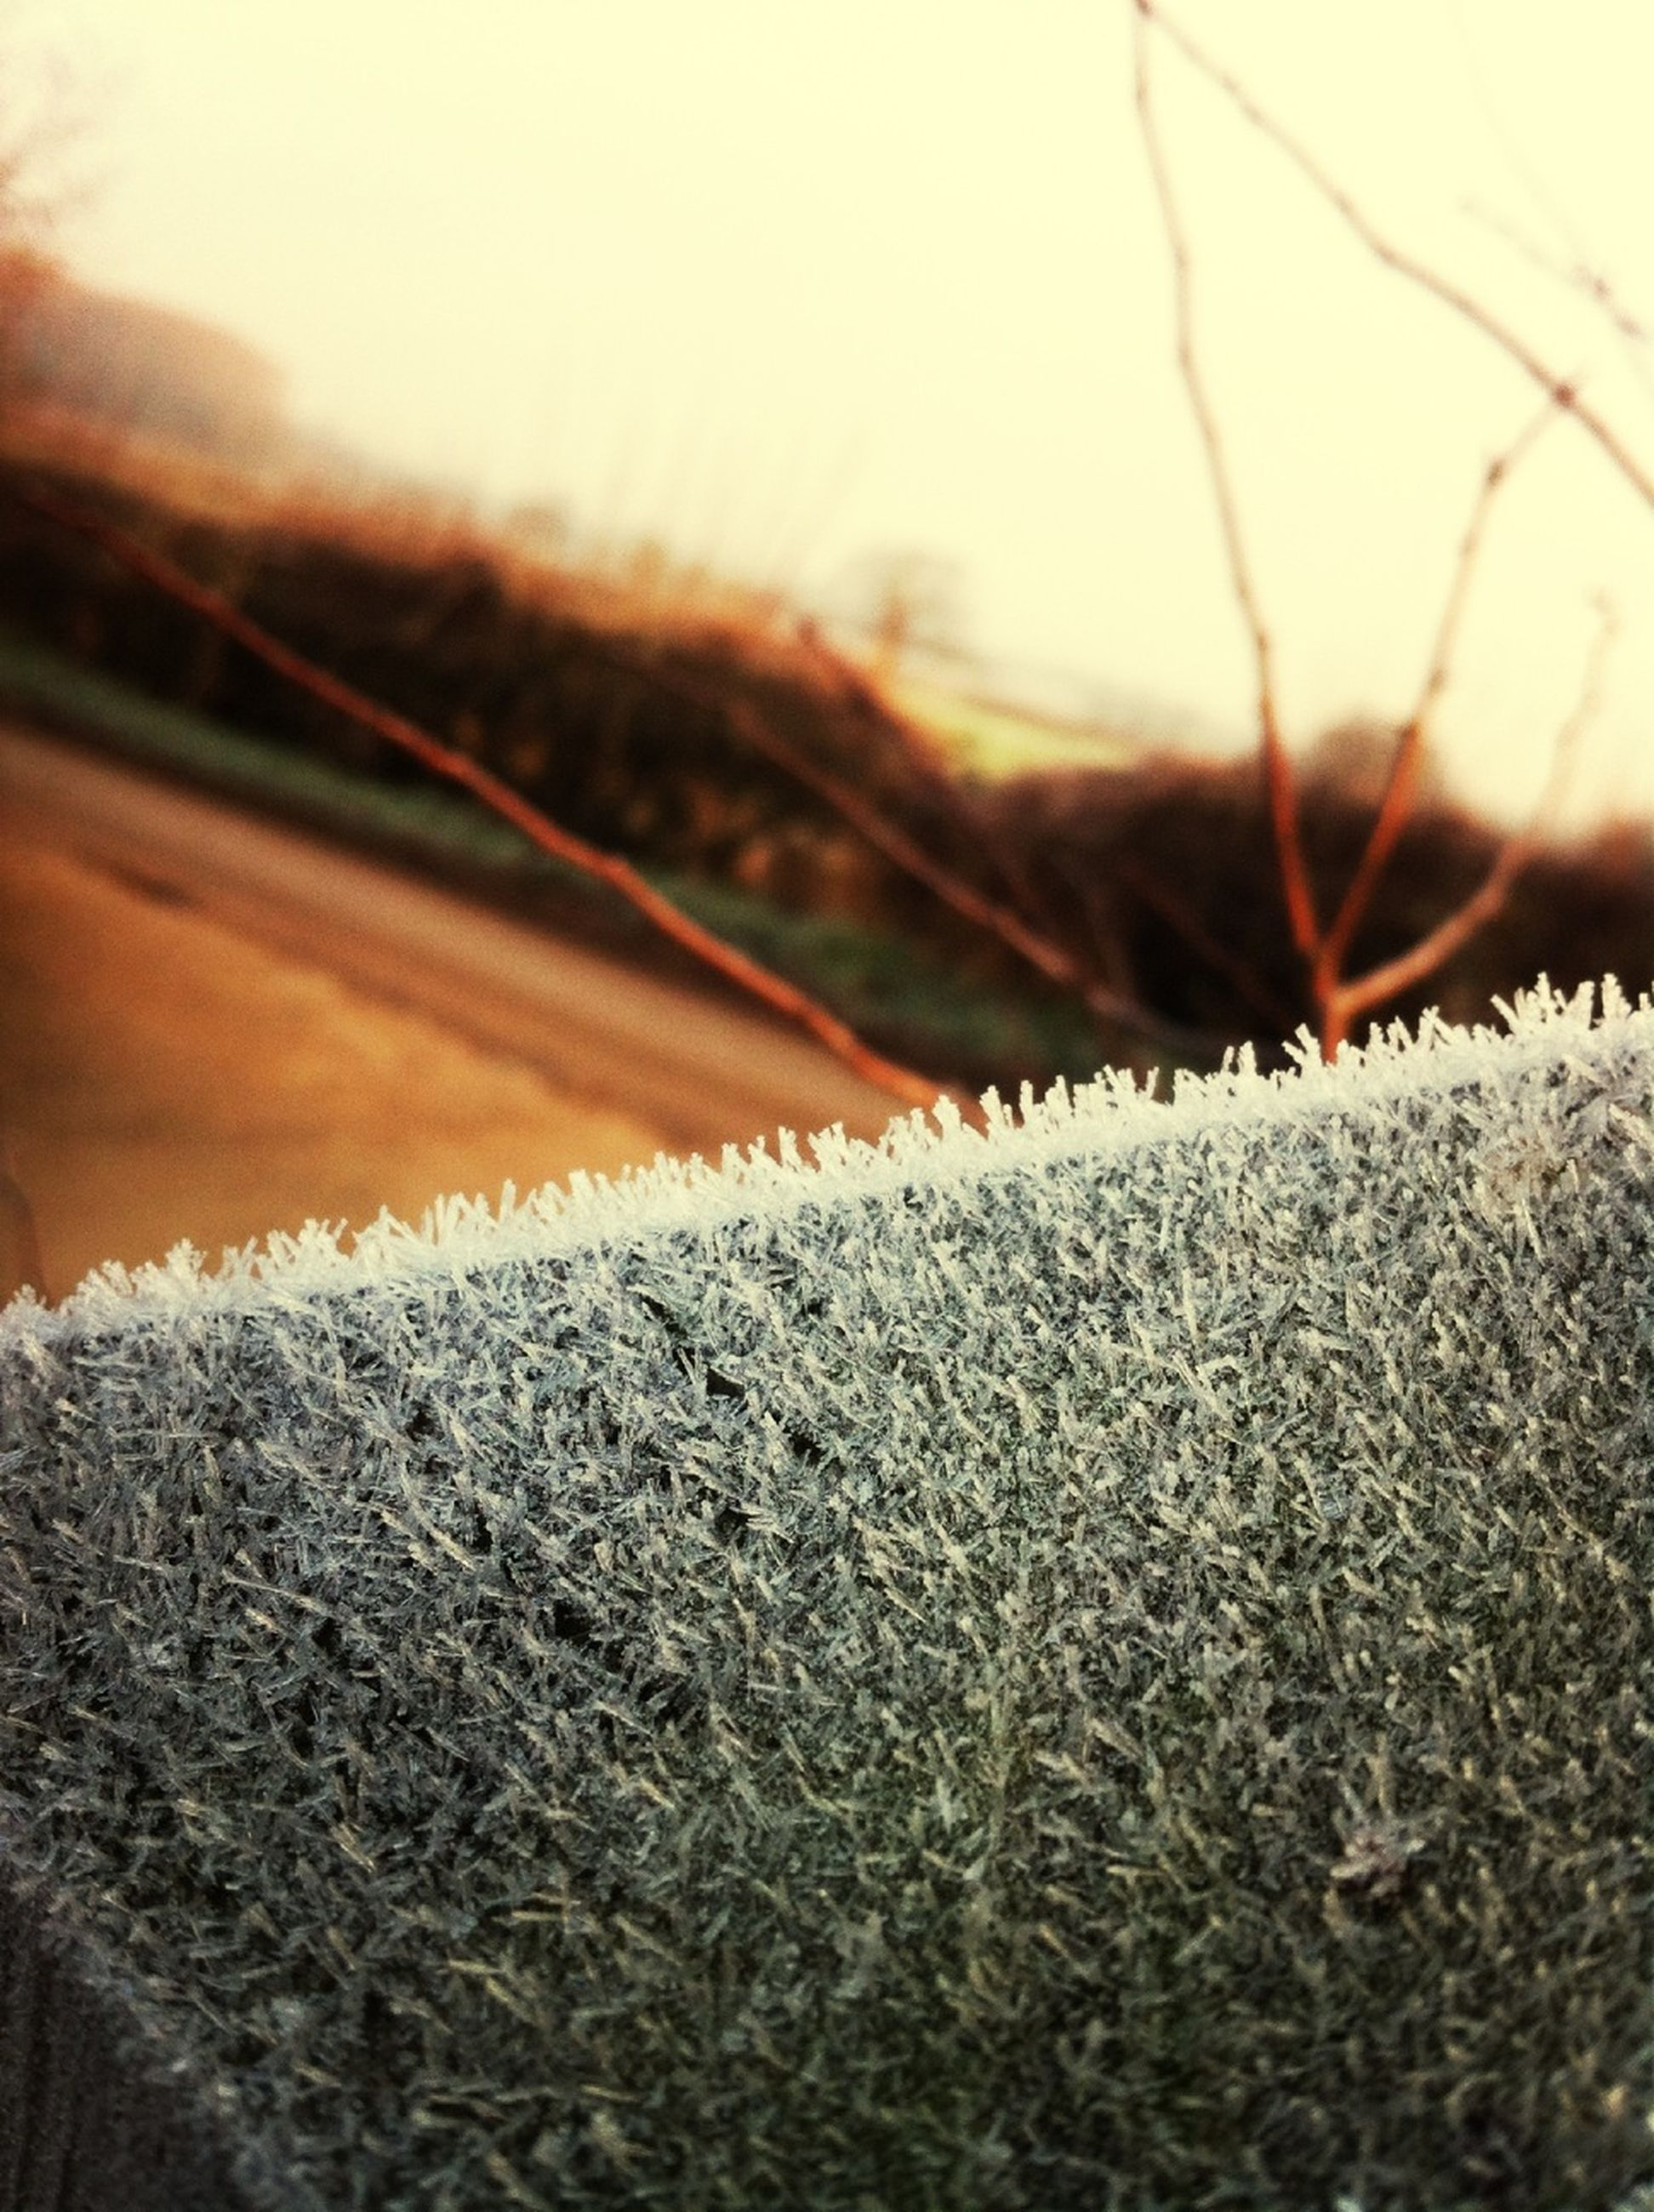 winter, snow, cold temperature, focus on foreground, season, frozen, close-up, nature, weather, tranquility, selective focus, surface level, landscape, tranquil scene, field, dry, covering, outdoors, beauty in nature, no people